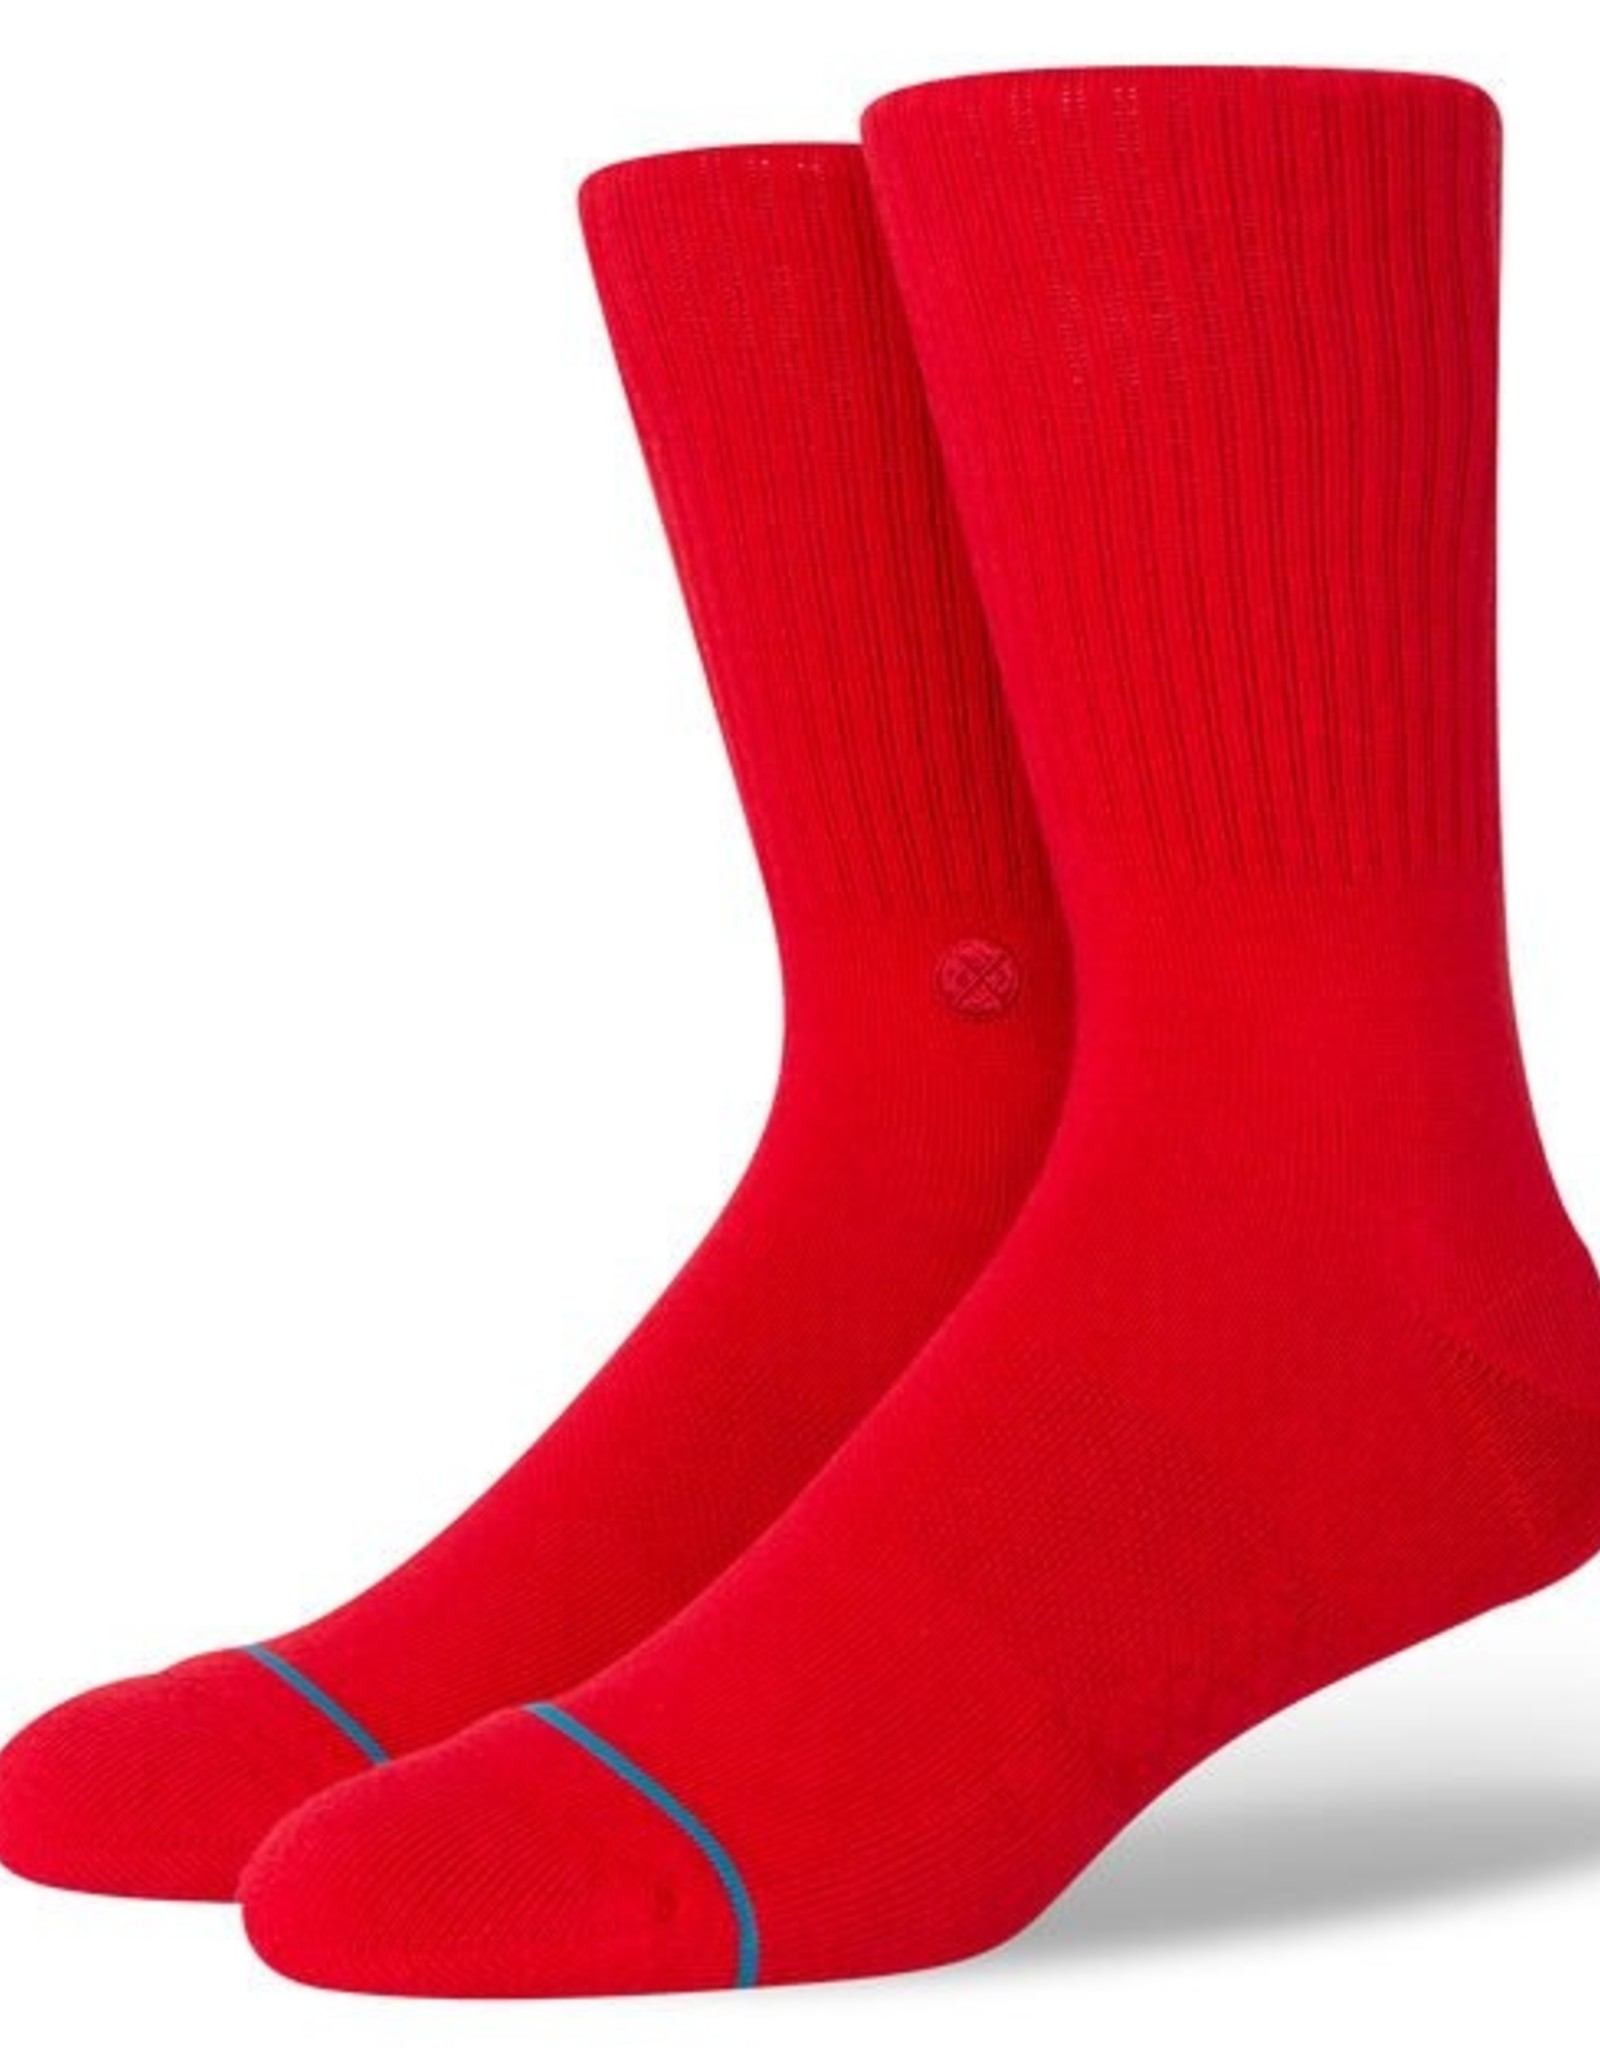 STANCE STANCE ICON SOCK - RED